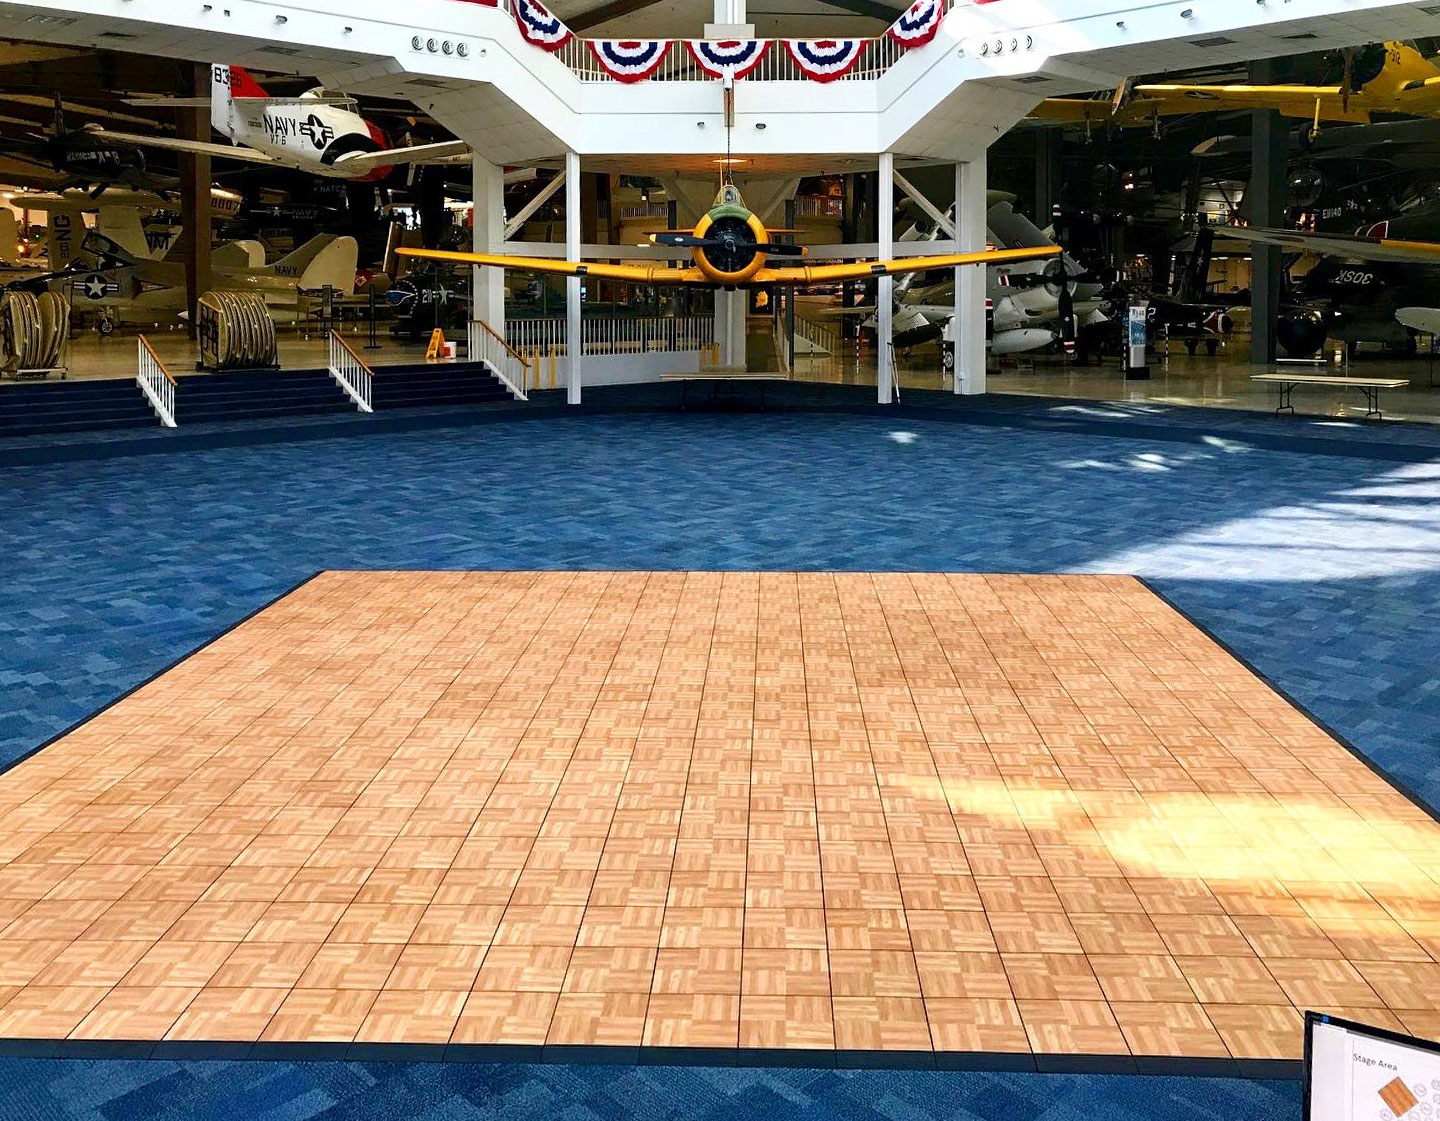 Oak style dance floor inside an airplane museum